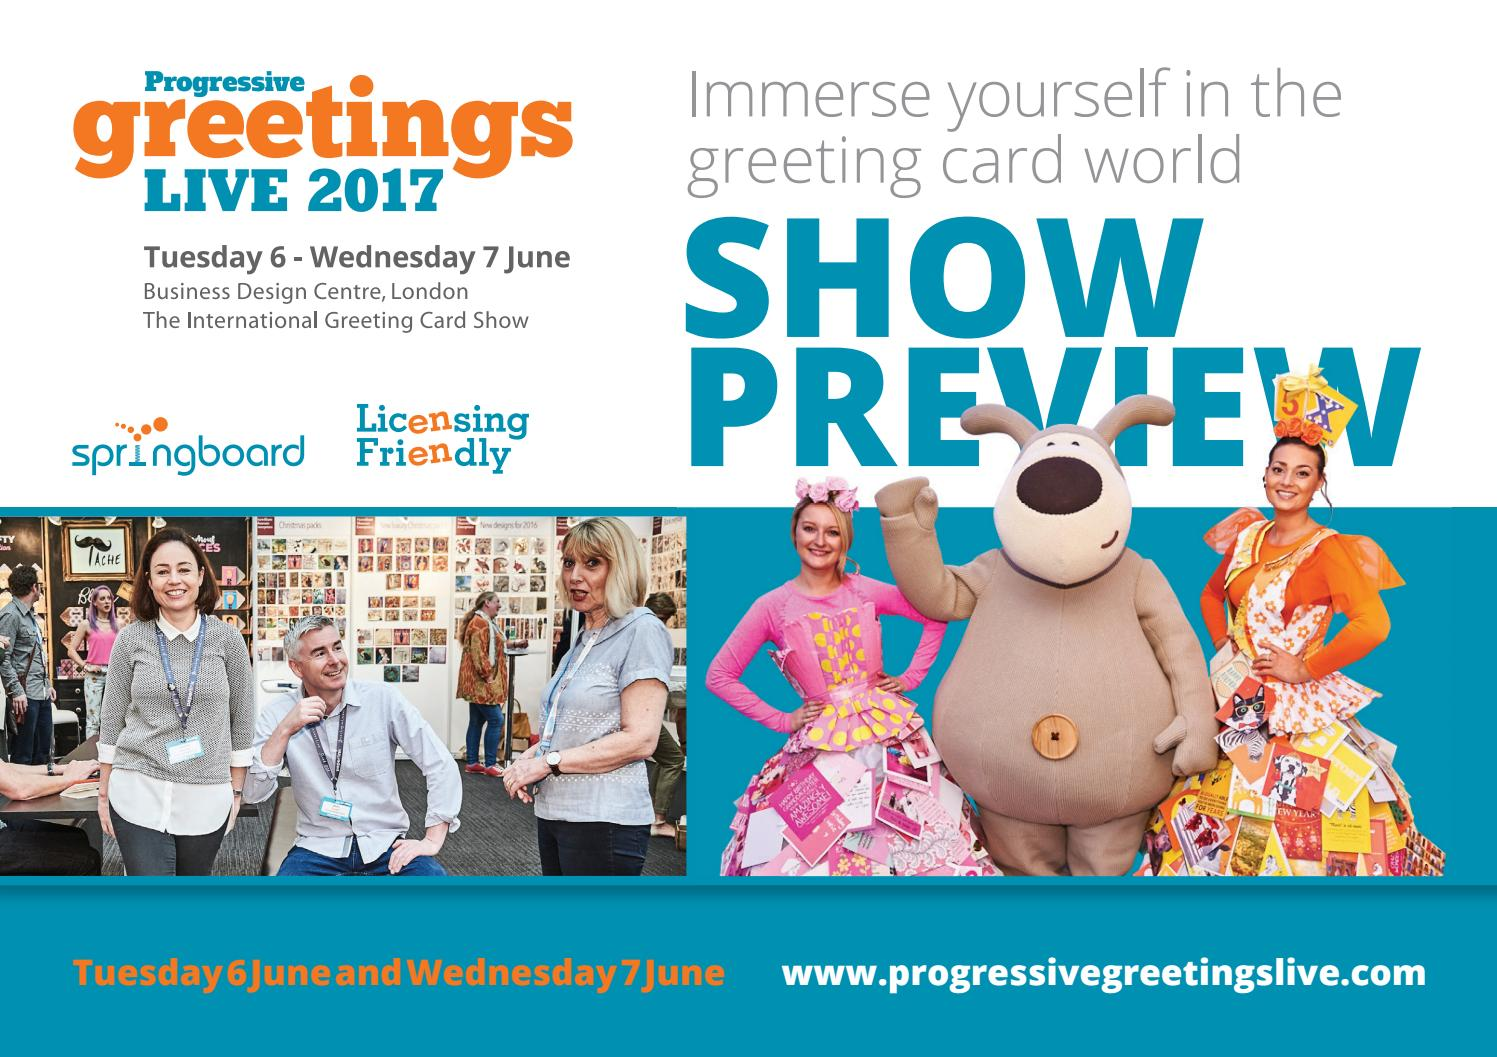 Progressive Greetings Live 2017 Show Preview By Max Publishing Issuu